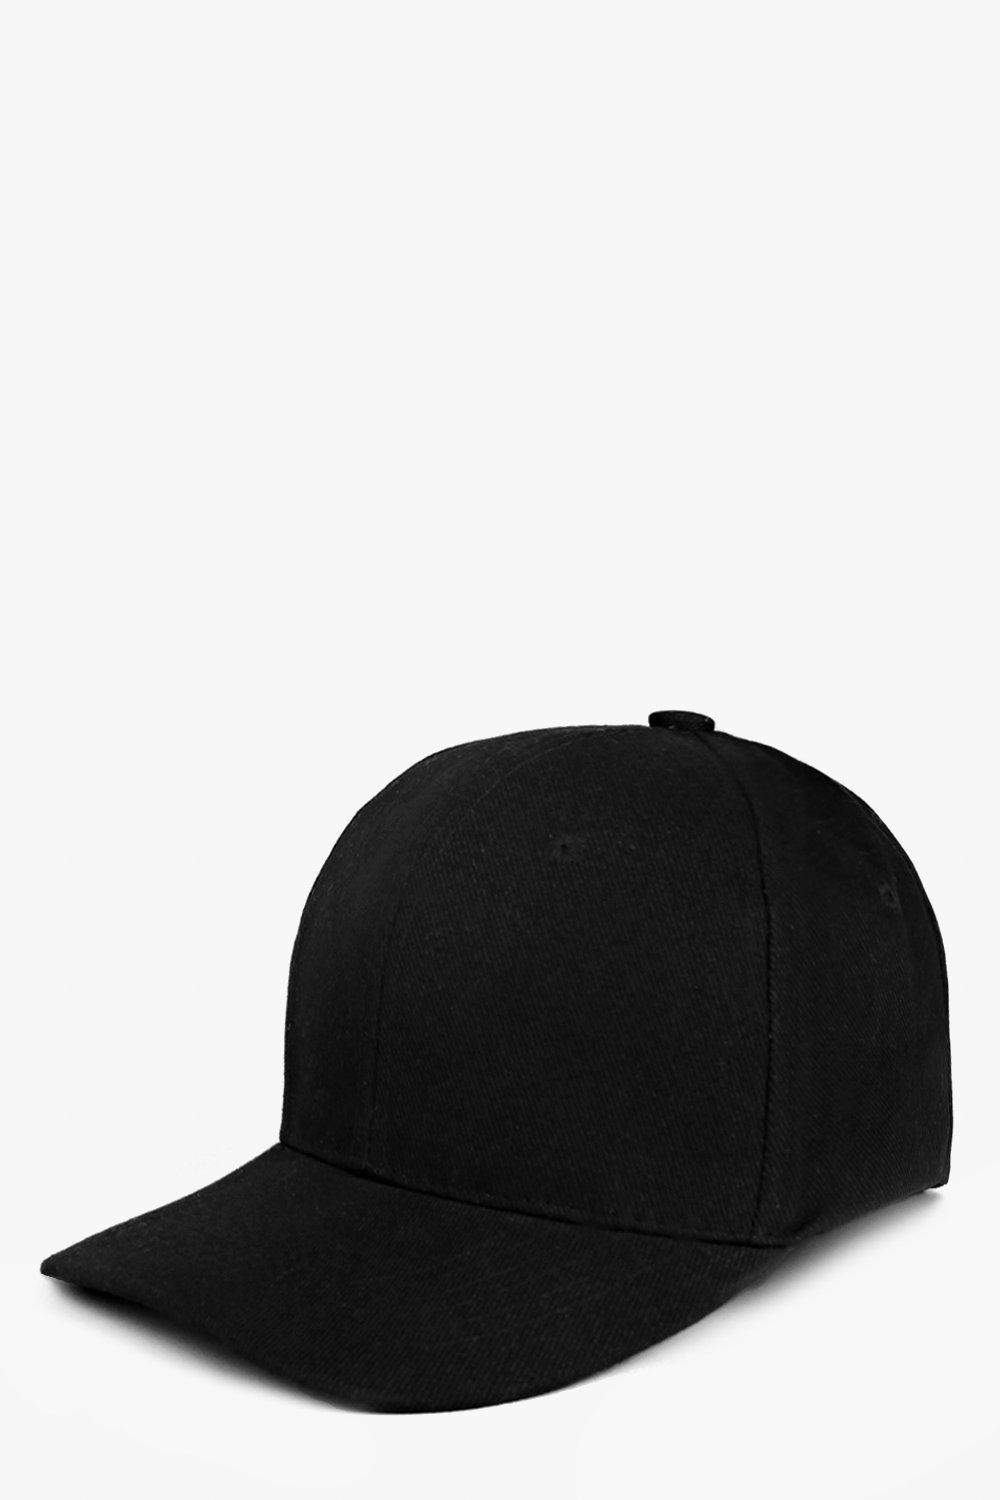 Basic Baseball Cap - black - Stay snug in scarves